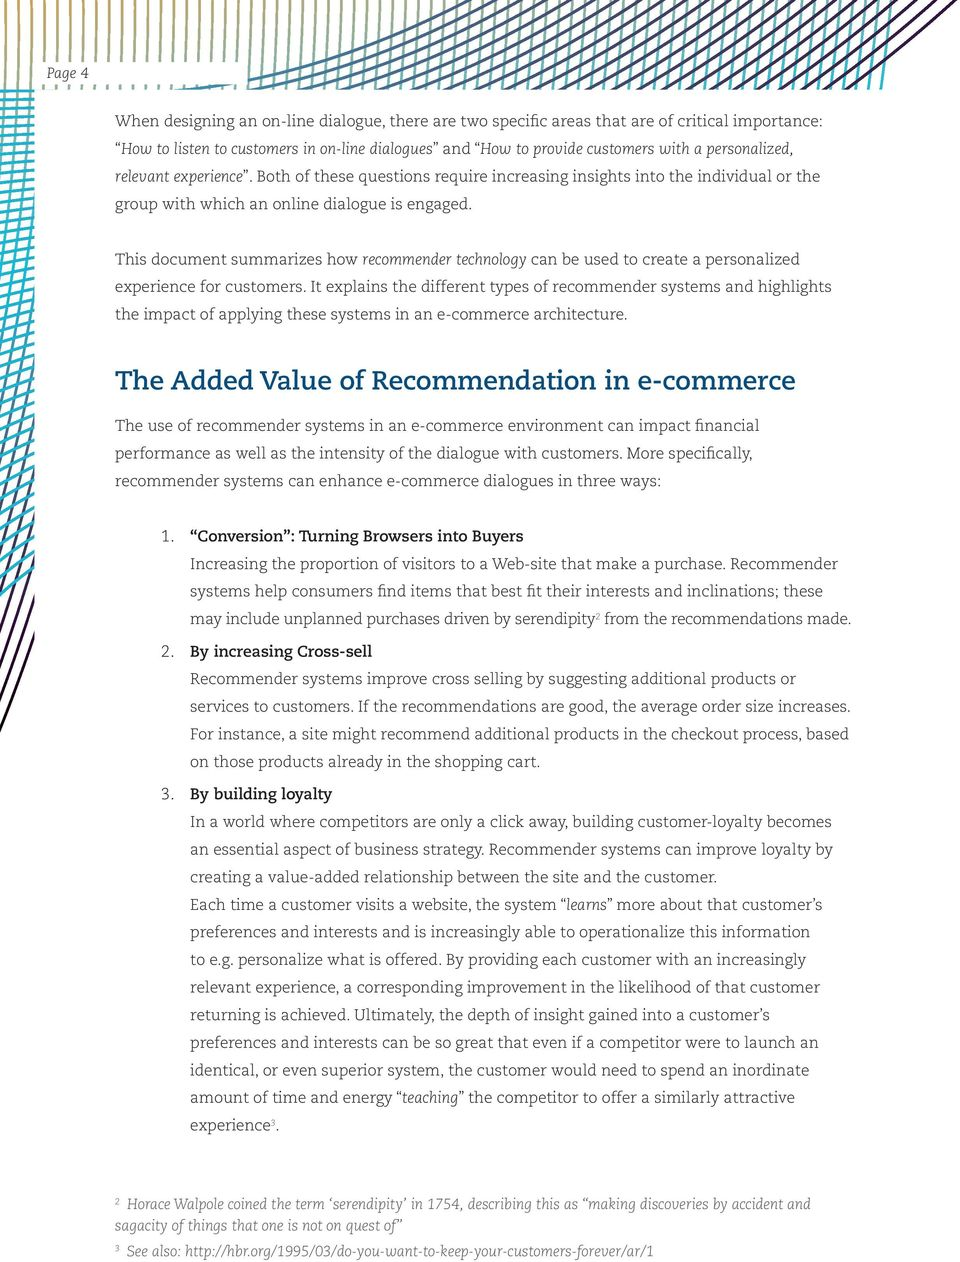 This document summarizes how recommender technology can be used to create a personalized experience for customers.